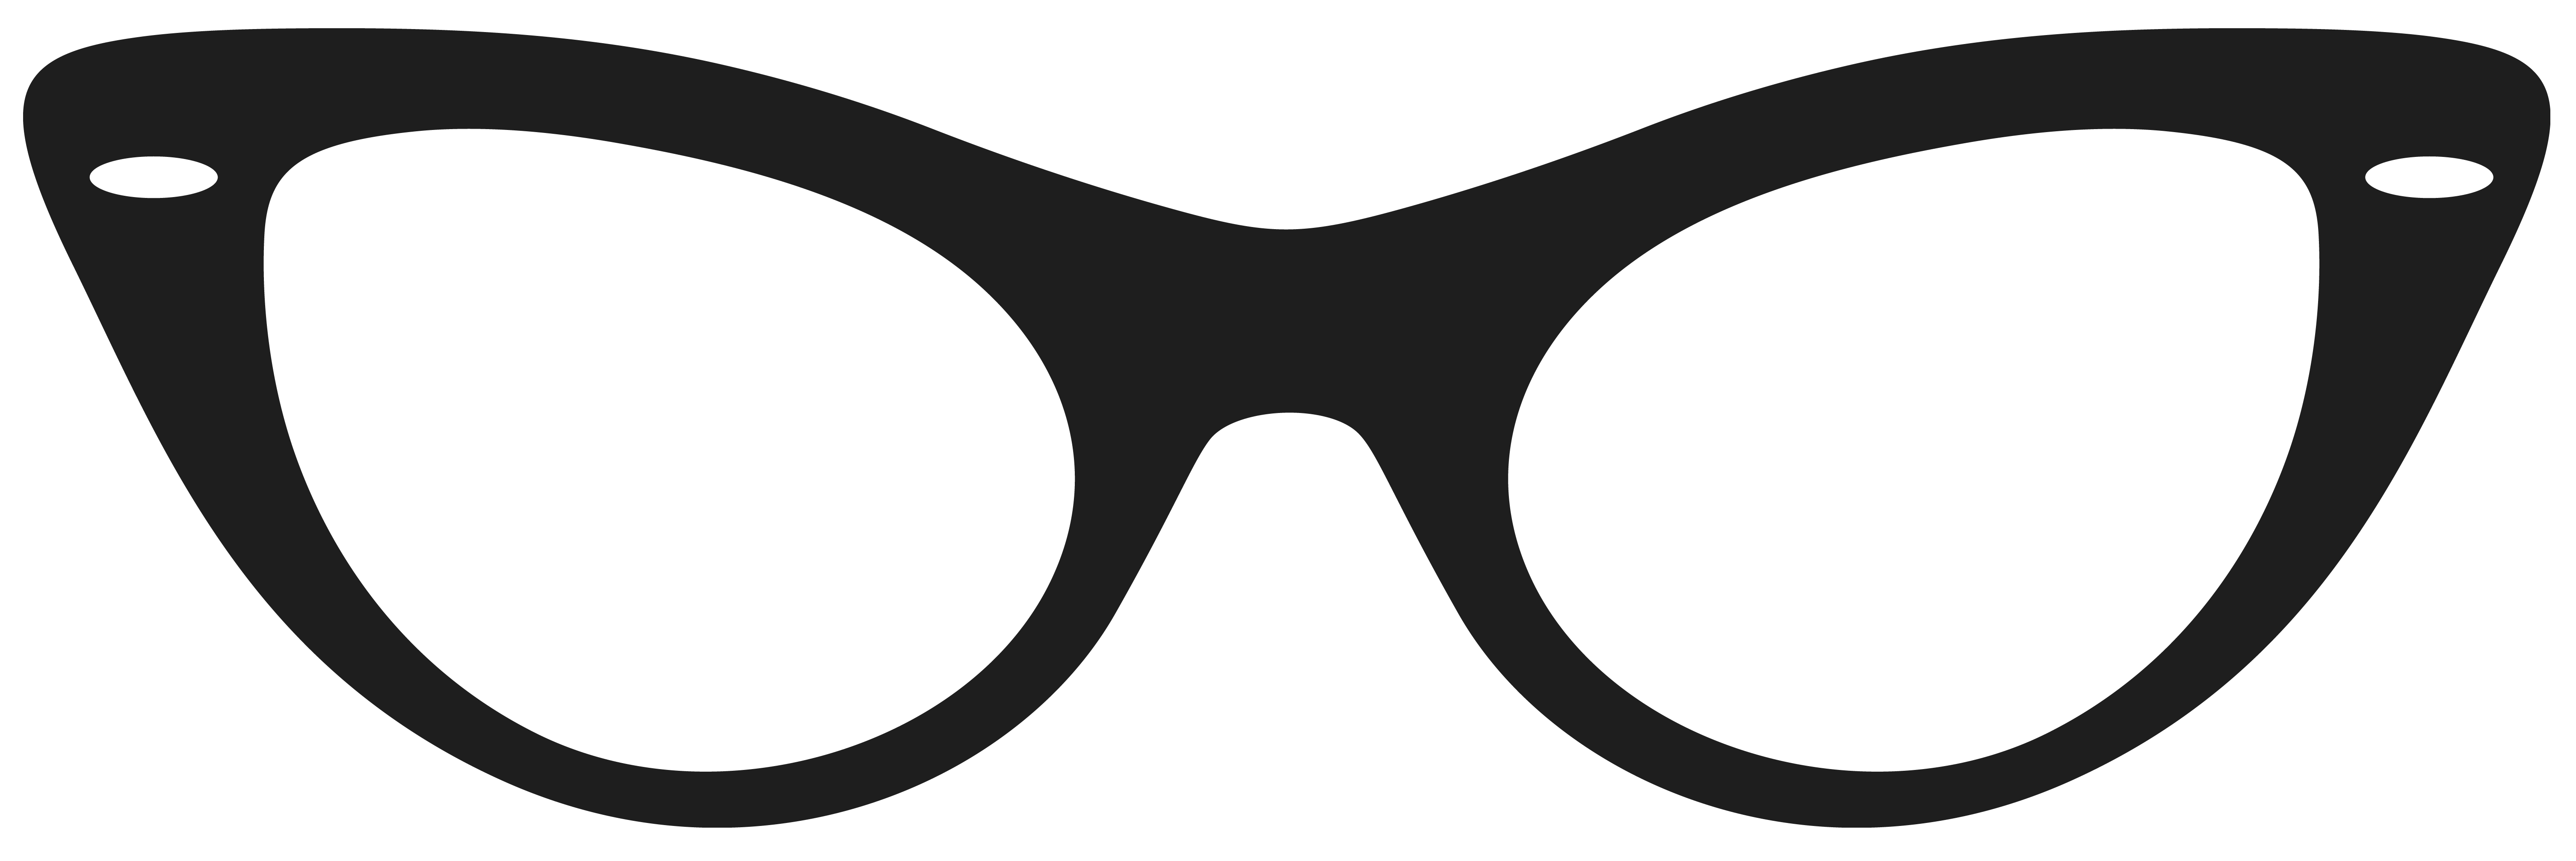 Glasses clipart #11, Download drawings